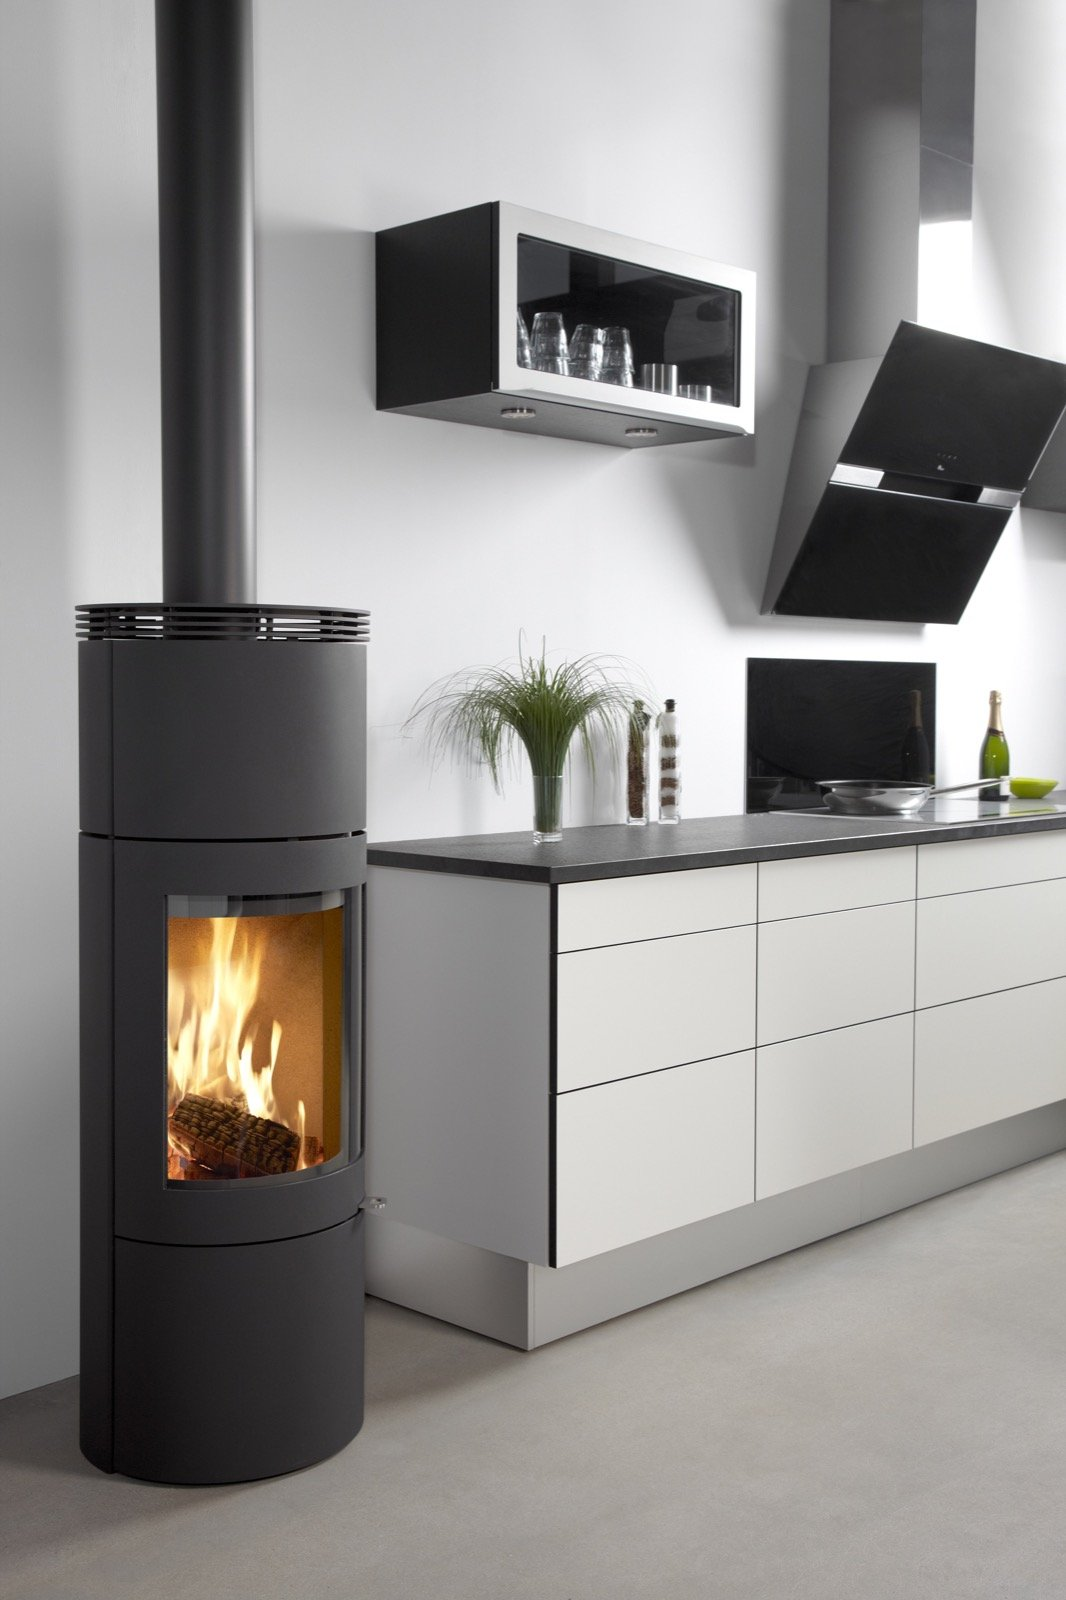 Westfire Uniq 28 Convection Wood Burning Stove In Black